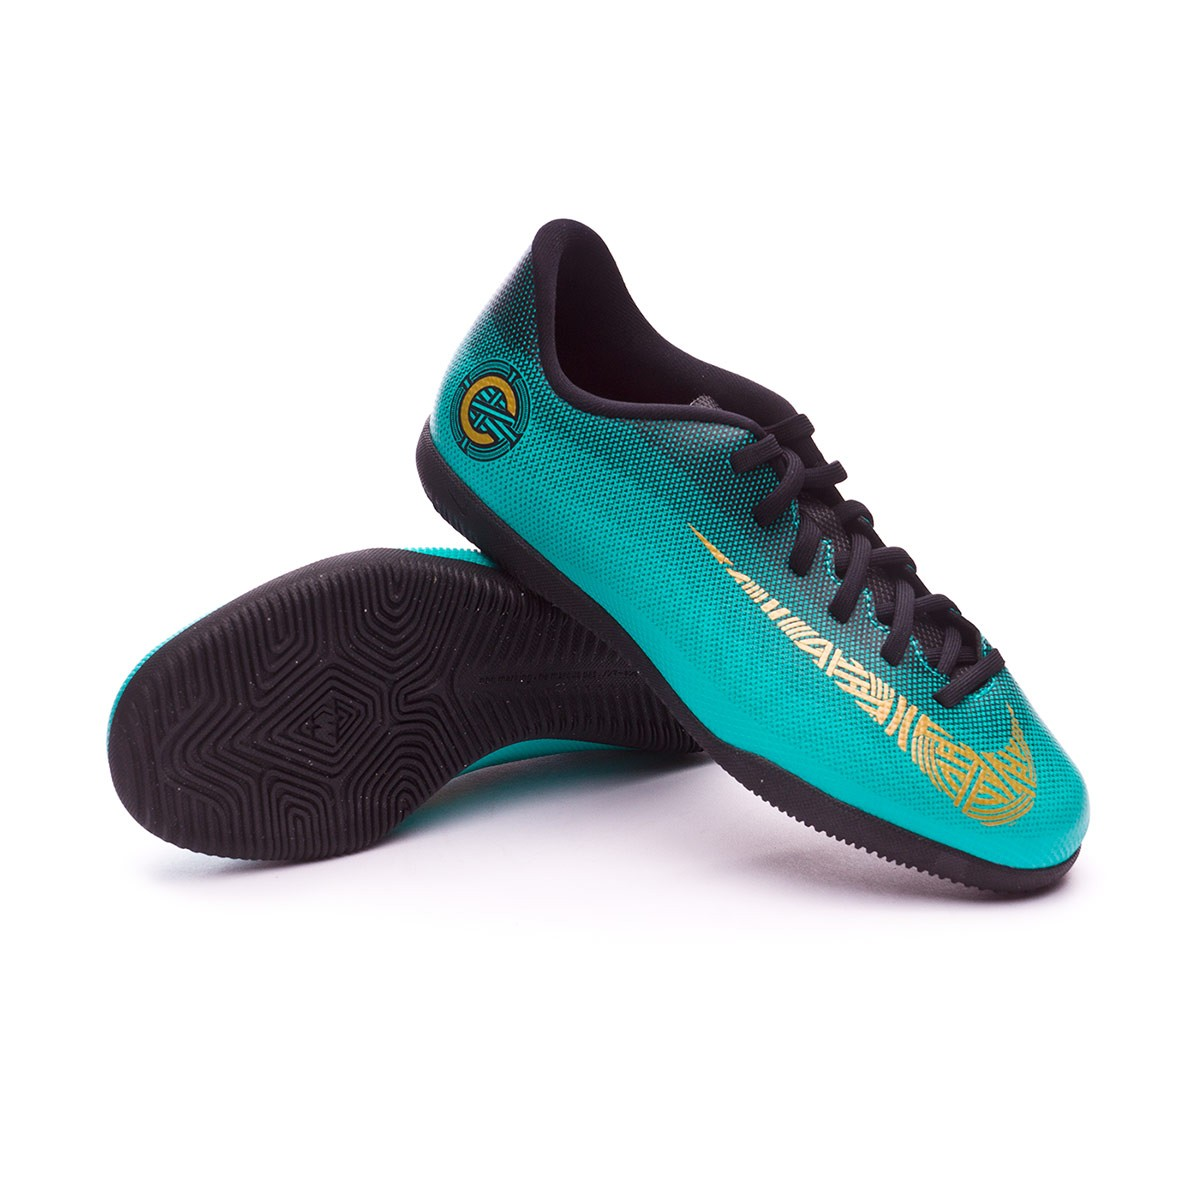 6980d6e1 Zapatilla Nike Mercurial VaporX XII Club GS CR7 IC Niño Clear jade-Metallic  vivid gold-Black - Tienda de fútbol Fútbol Emotion